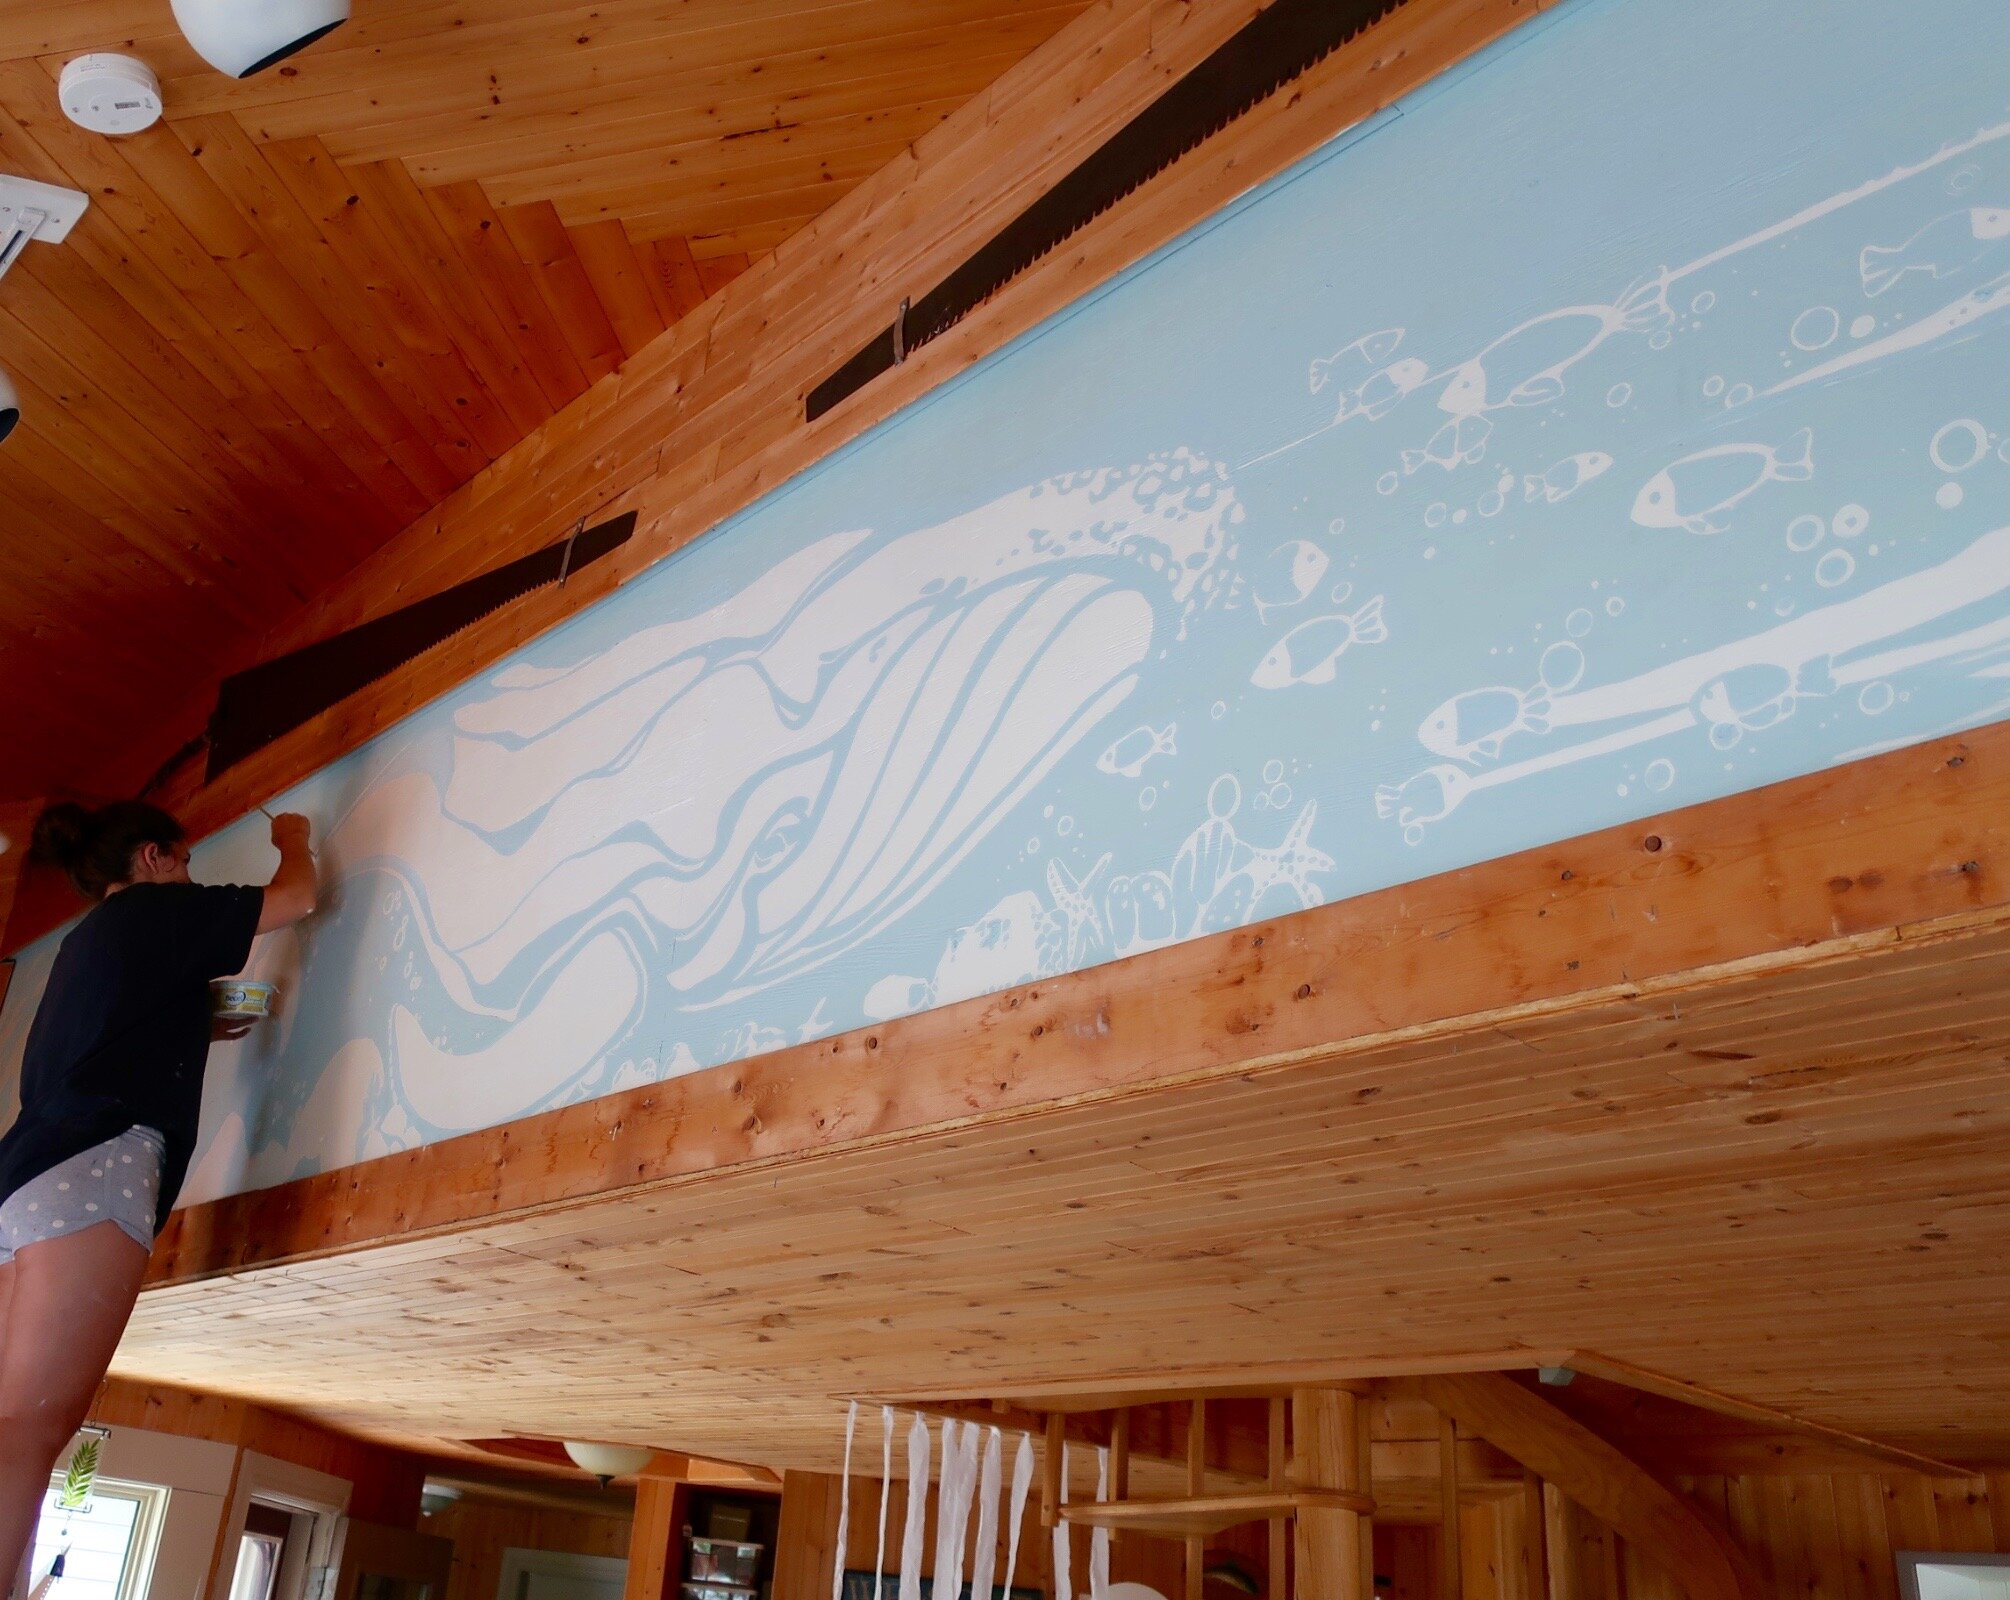 First layers of the mural. - At Nanny's cabin in Spread Eagle, NL.